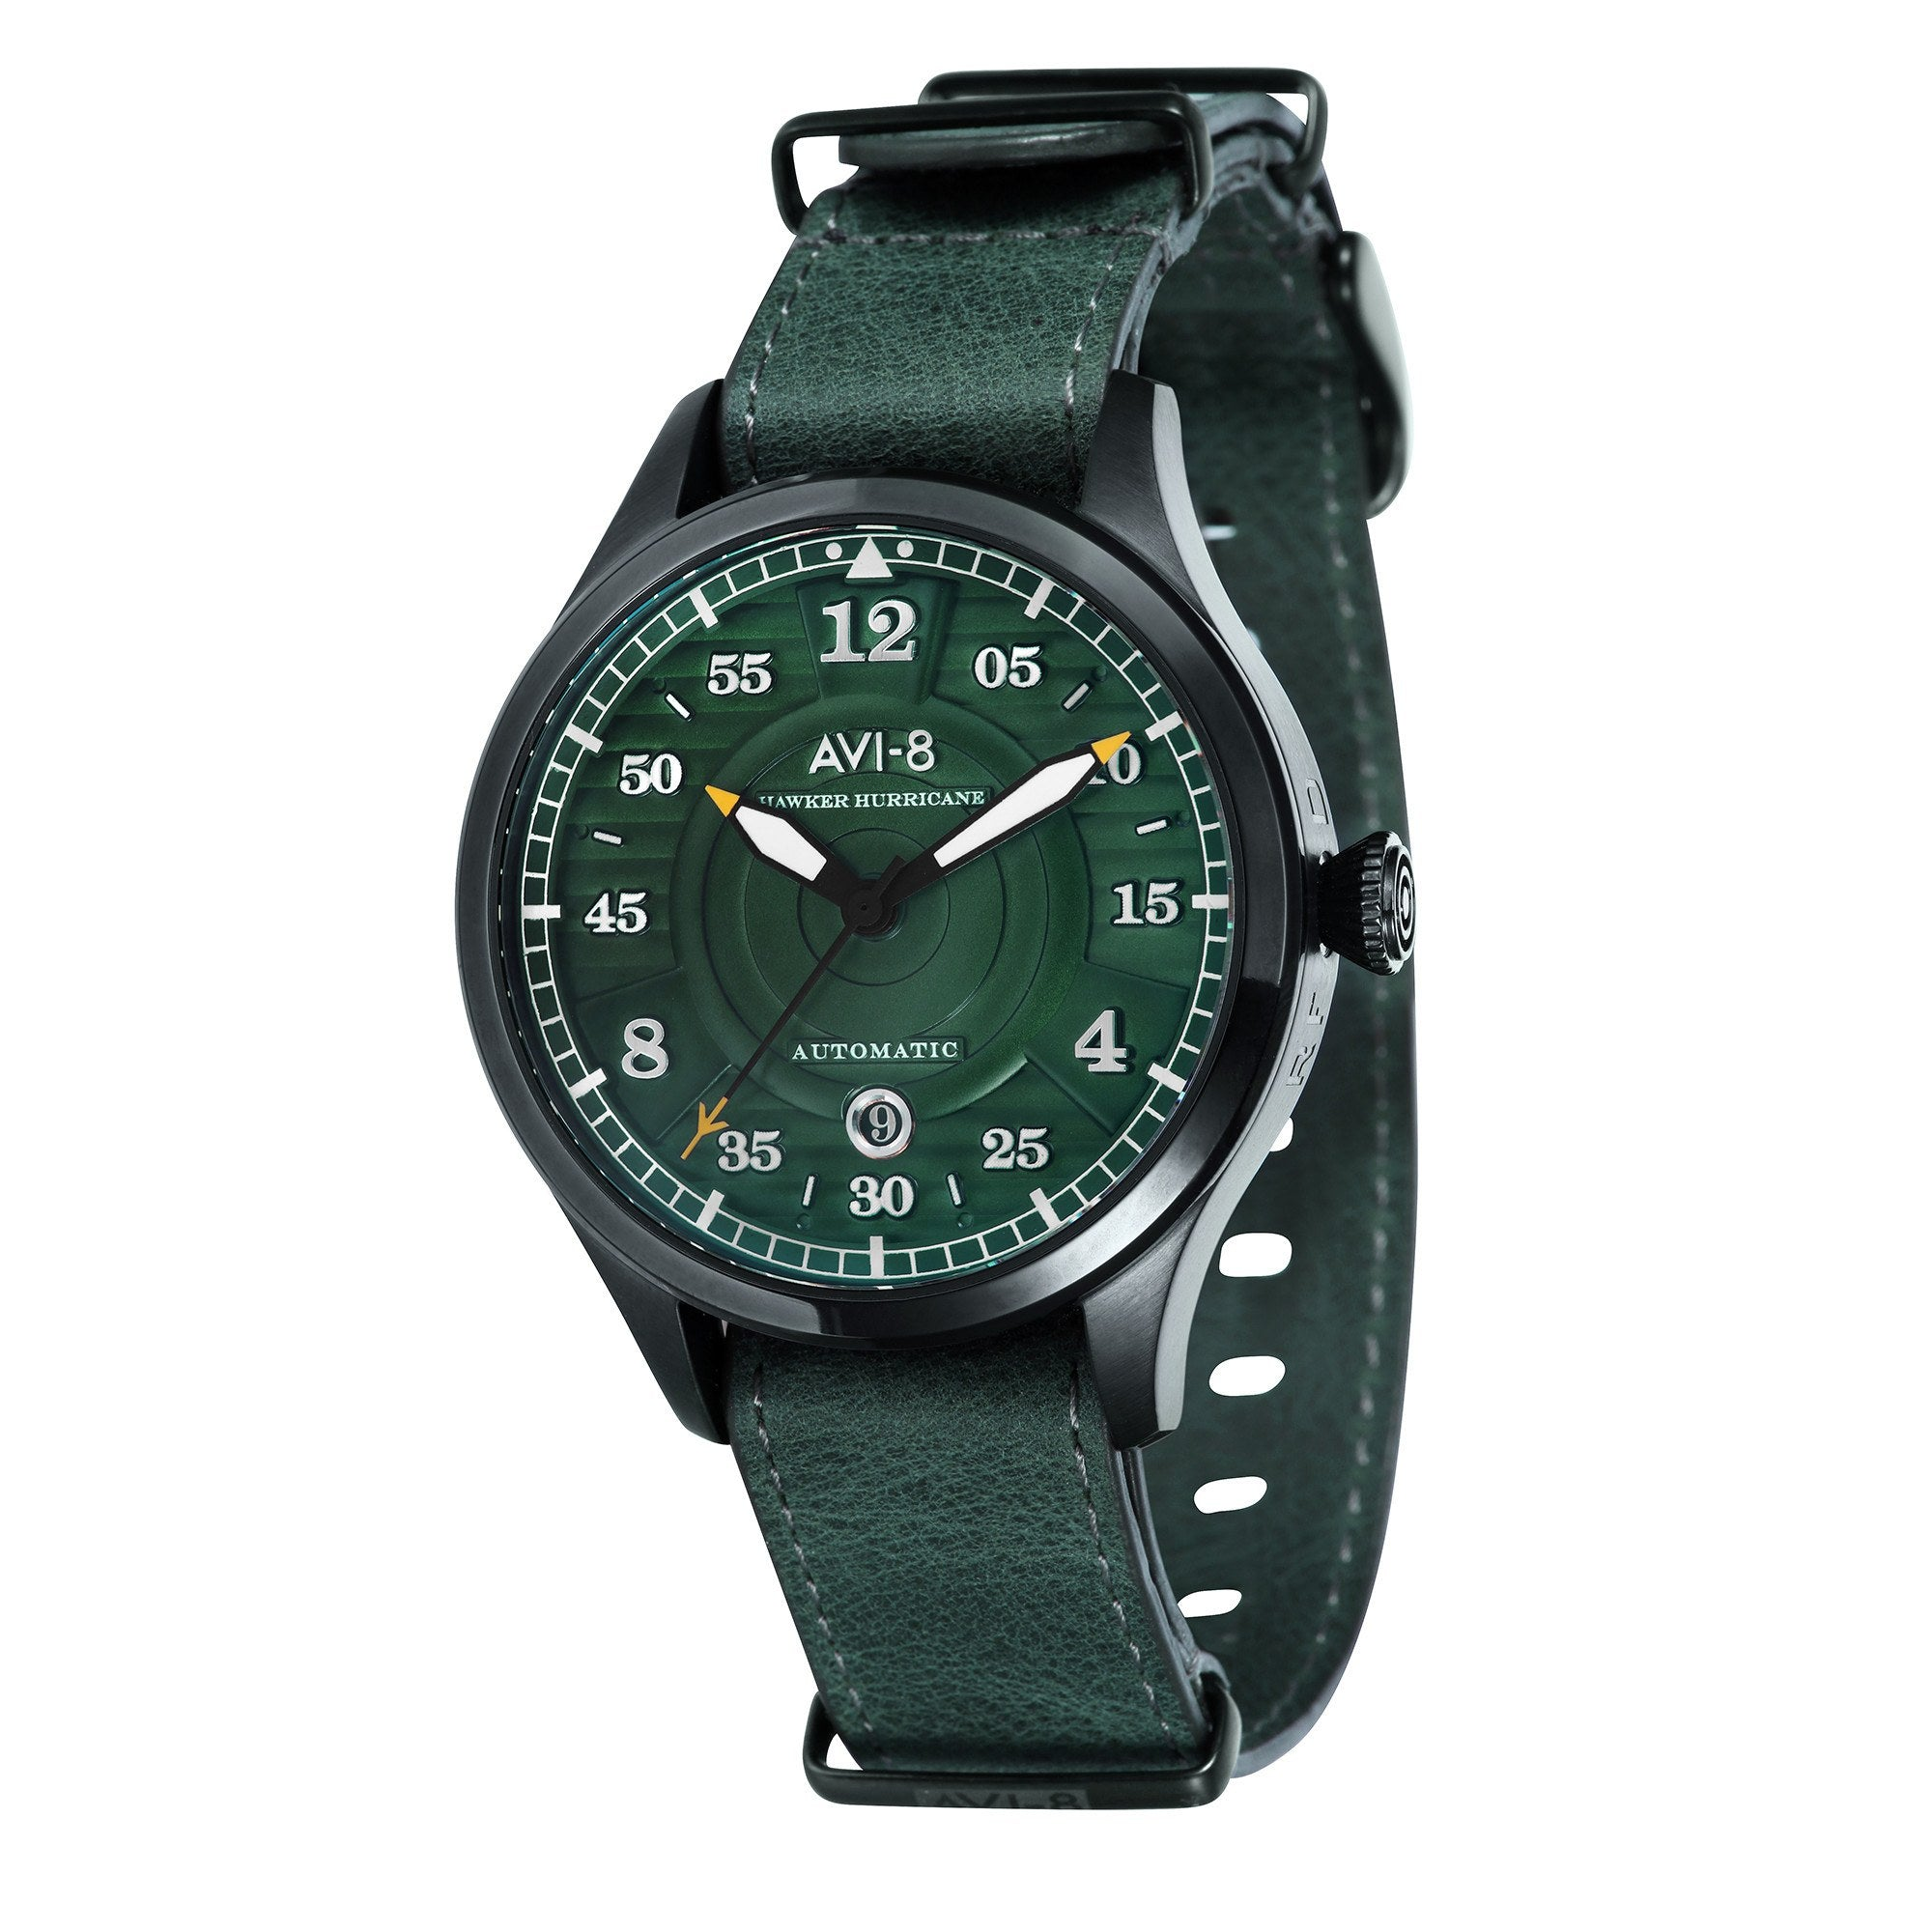 AVI-8 Men's AV-4046-04 Hawker Hurricane Black Automatic Watch with Green Genuine Leather Strap